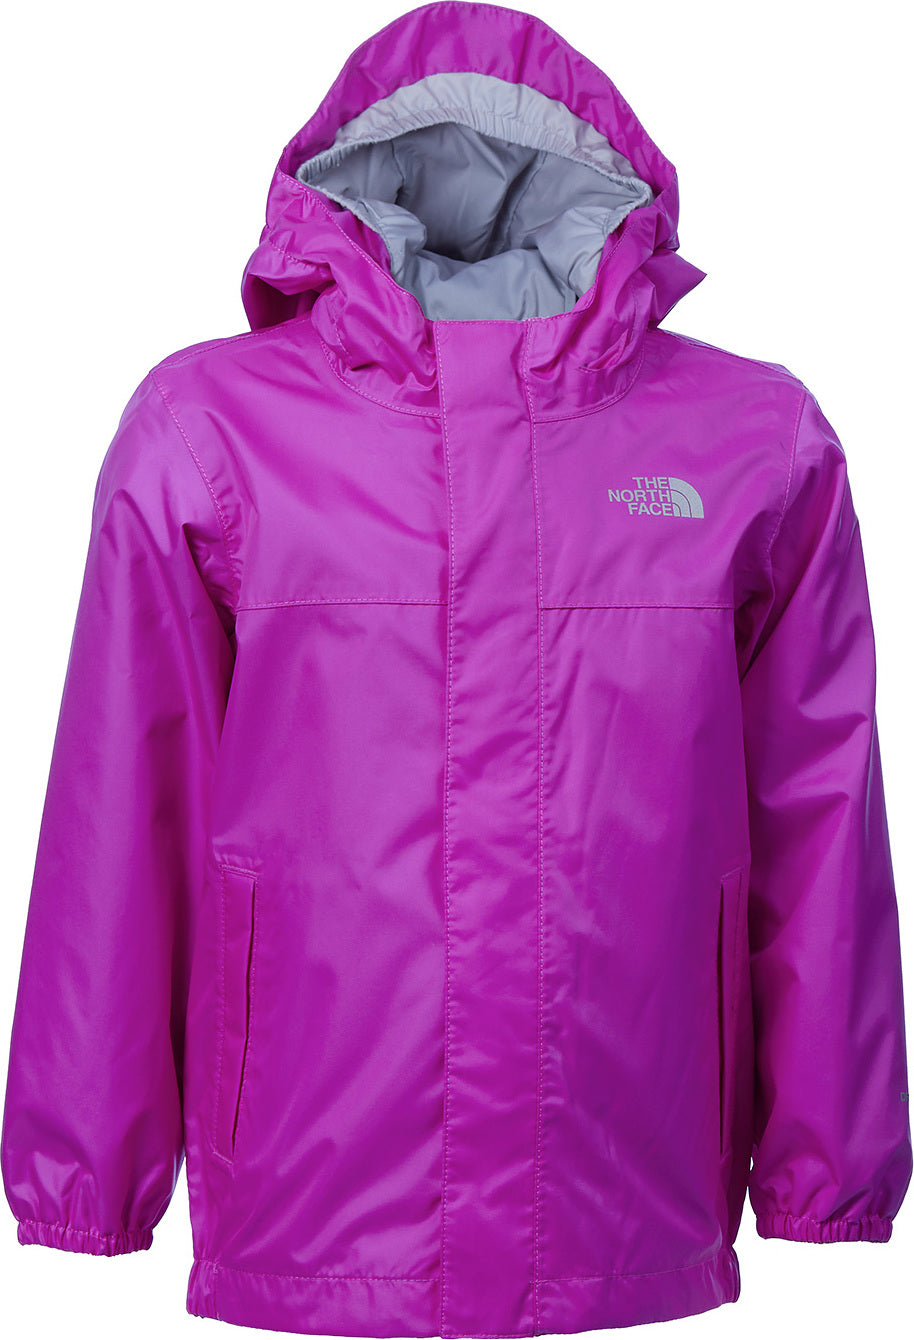 91c29c06ff1a The North Face Toddler Tailout Rain Jacket